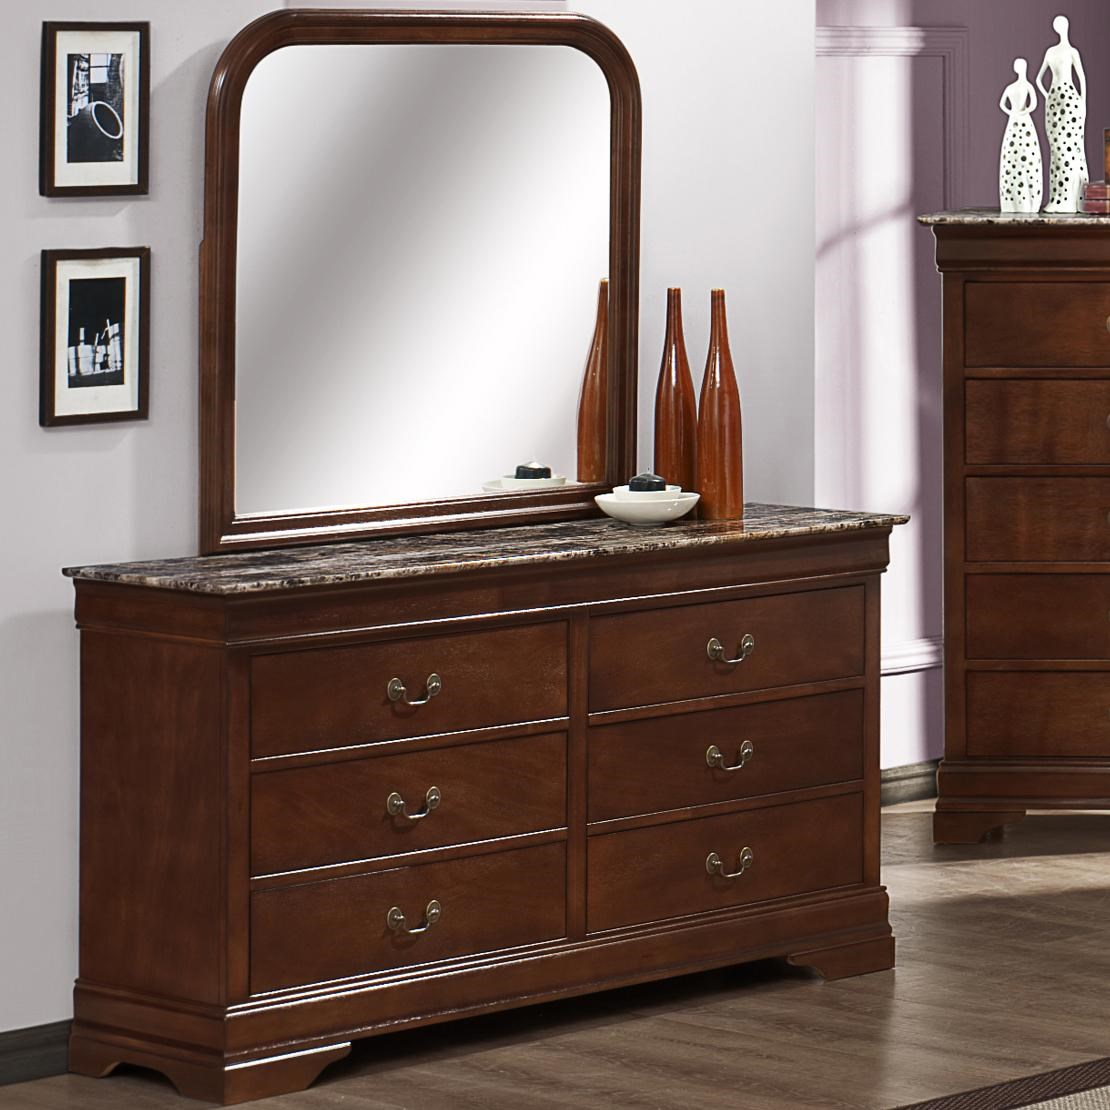 Austin Group Marseille 6 Drawer Dresser With Faux Marble Top And Dresser  Mirror